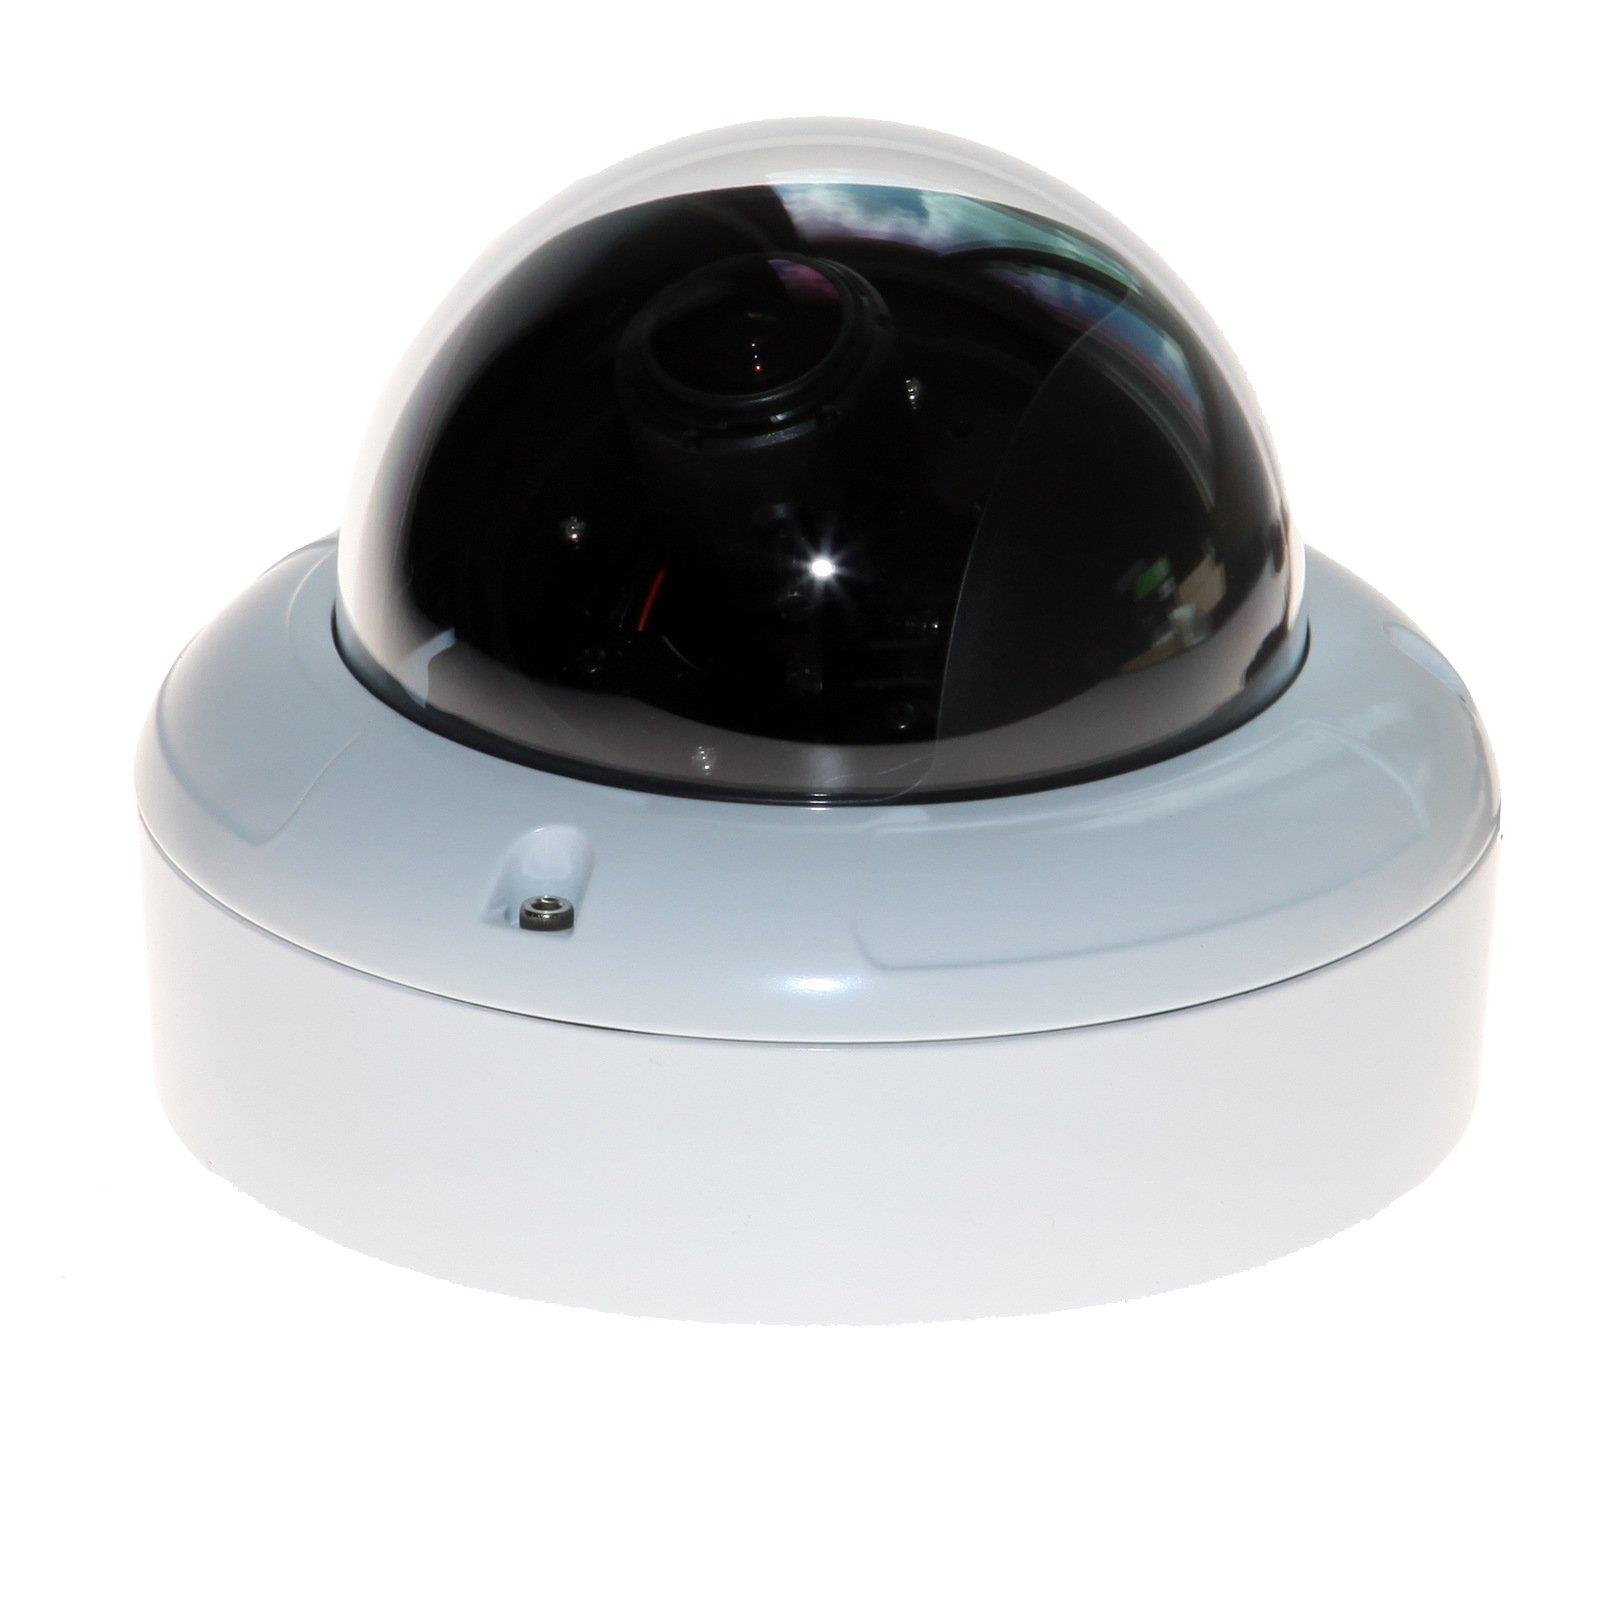 IP kamera 720P 2.8-12mm IR-CUT Dome, IR 5mm x 30